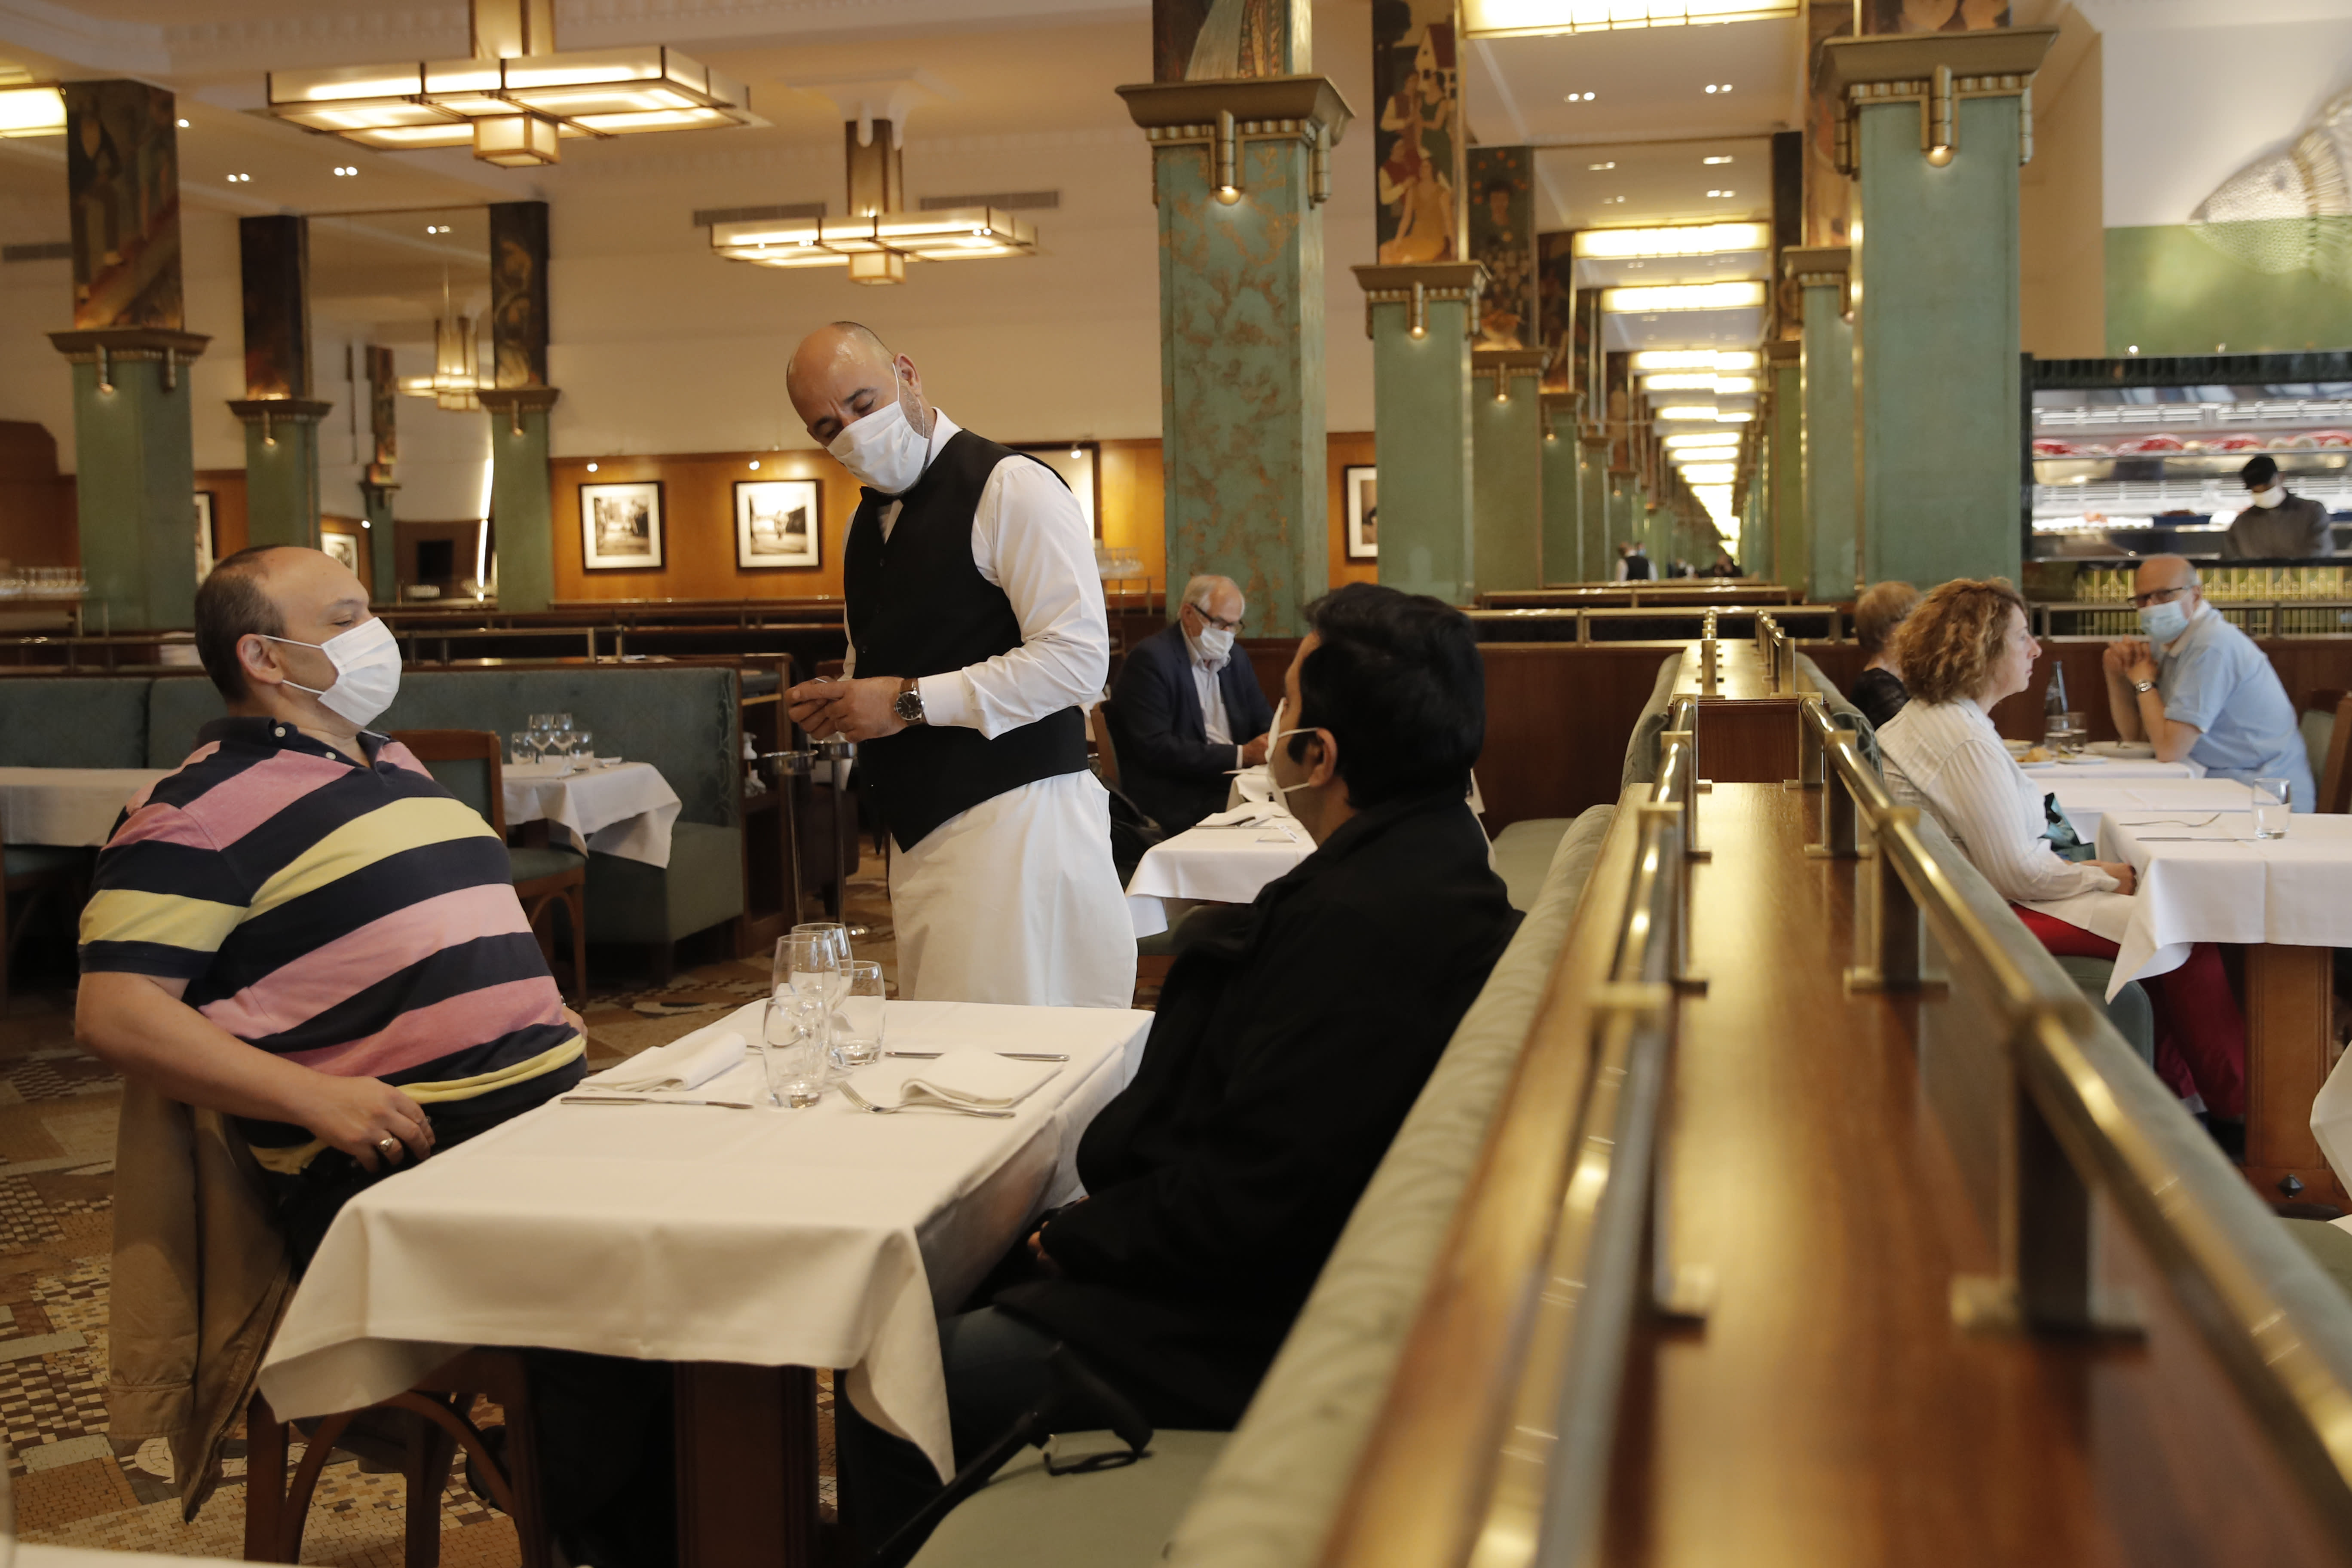 A waiter listens to clients at La Coupole restaurant, Monday, June 15, 2020 in Paris. Paris is rediscovering itself, as its cafes and restaurants reopen for the first time since the fast-spreading virus forced them to close their doors March 14. Restaurants outside the Paris region opened earlier this month, and Paris cafes were allowed to serve people outside but not open their doors. After three months of losses, some restaurateurs fear it will take a long time for business to come back. (AP Photo/Christophe Ena)